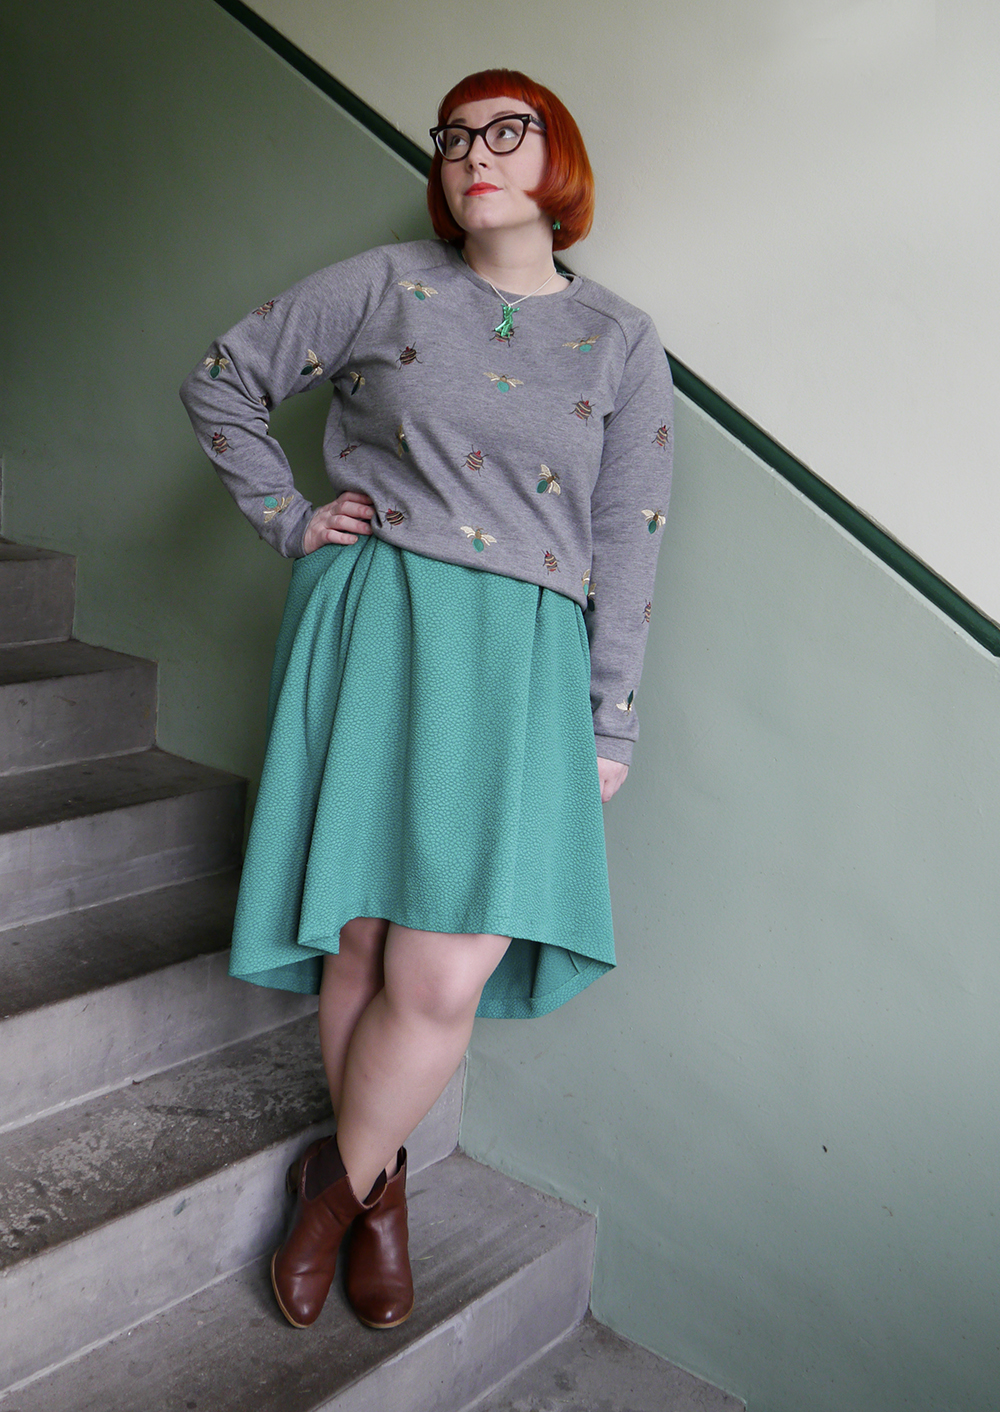 styled by helen, scottish blogger, dundee blogger, red head, ginger blogger, cat eye glasses, H&M bug jumper, green H&M dress, brown Zara boots, Sugar & Vice, Sugar and Vice grasshopper jewellery, grasshopper necklace, grasshopper earrings